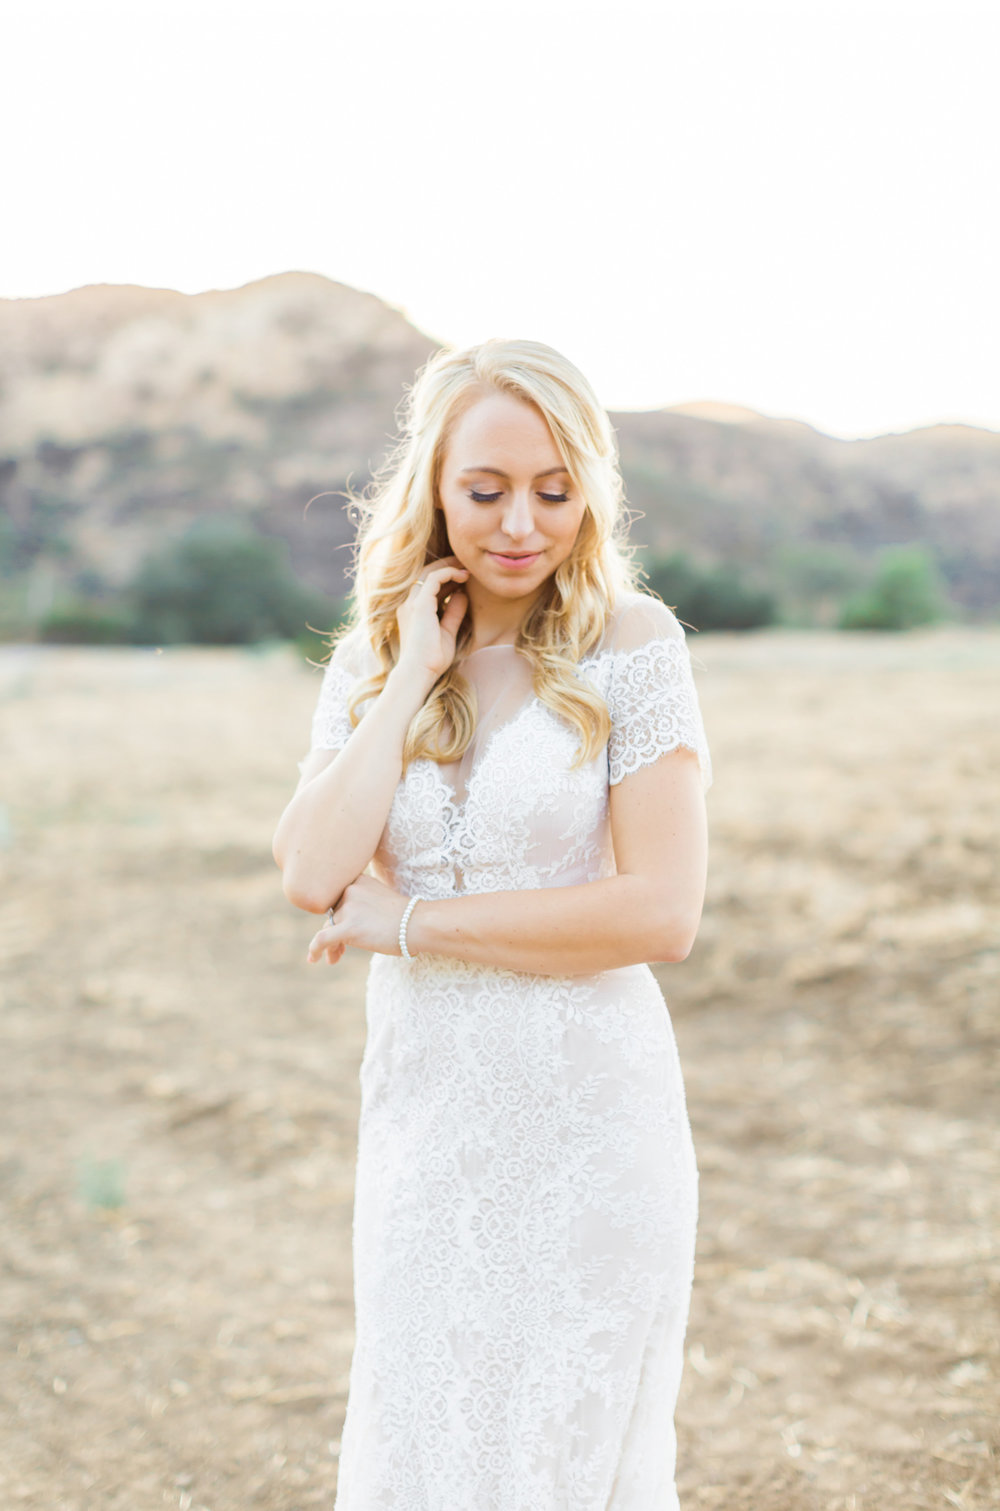 California-Wedding-Photographer-Style-Me-Pretty-Natalie-Schutt-San-Luis-Obispo_07.jpg